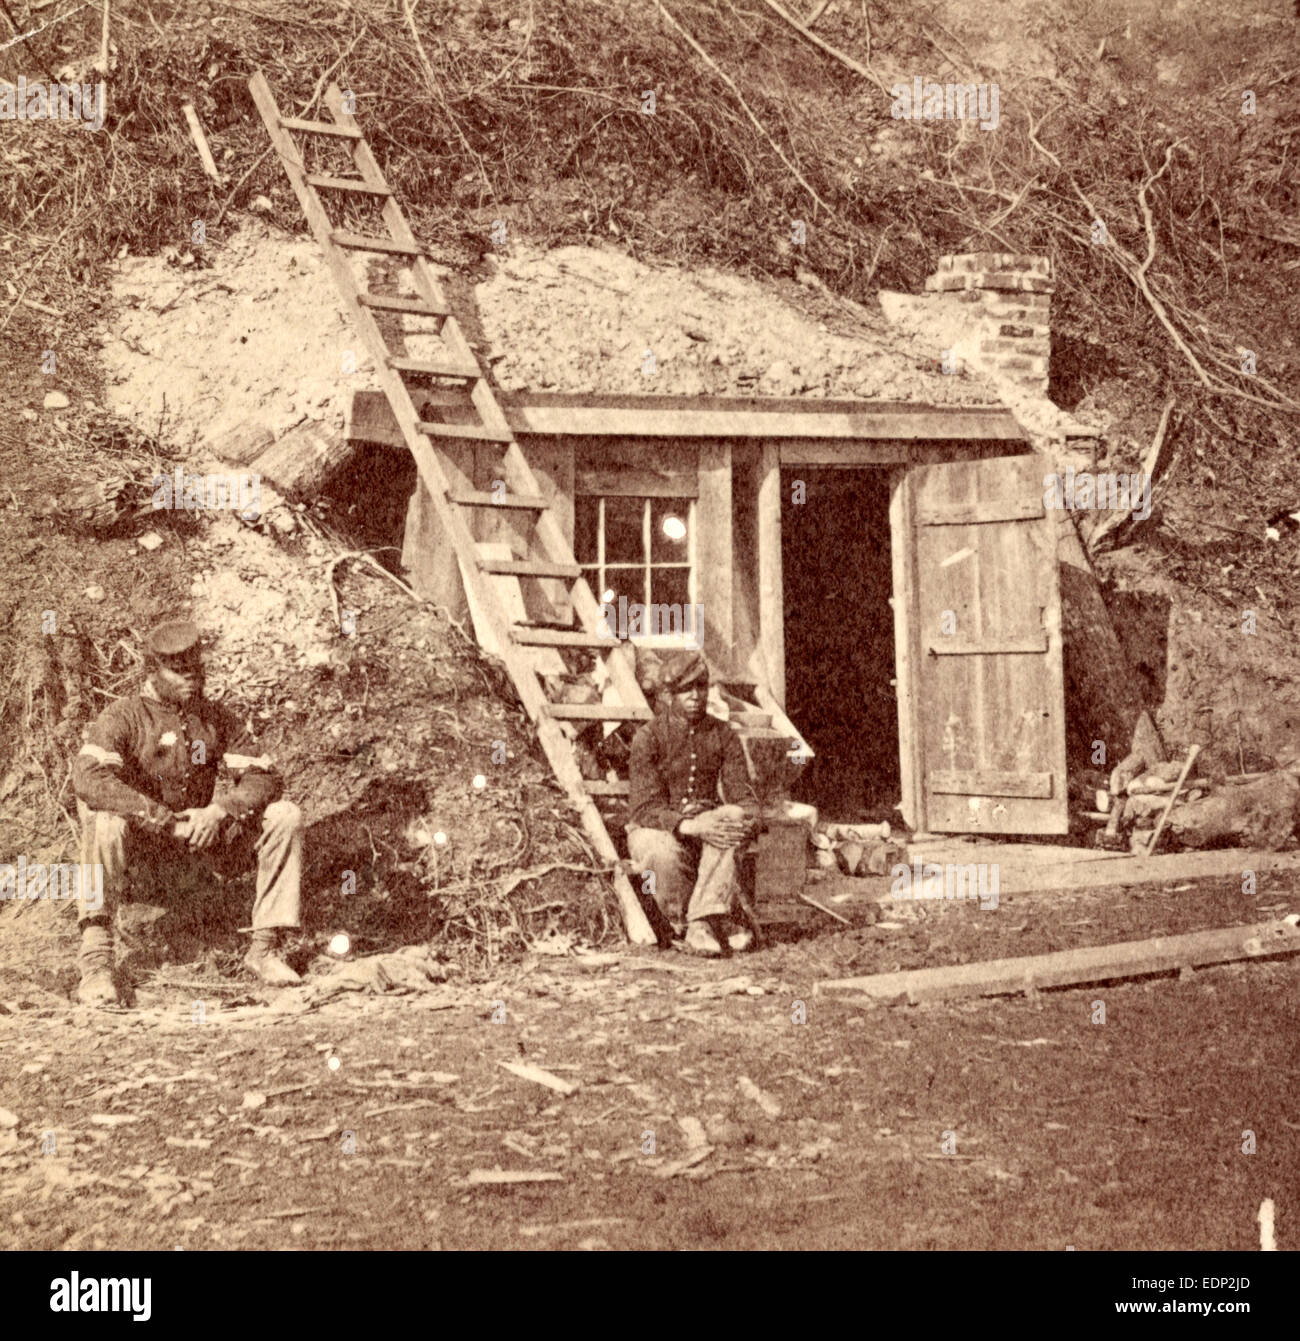 Bomb-proof quarters of Major Strong, at Dutch Gap, Va., July, 1864, US, USA, America, Vintage photography - Stock Image